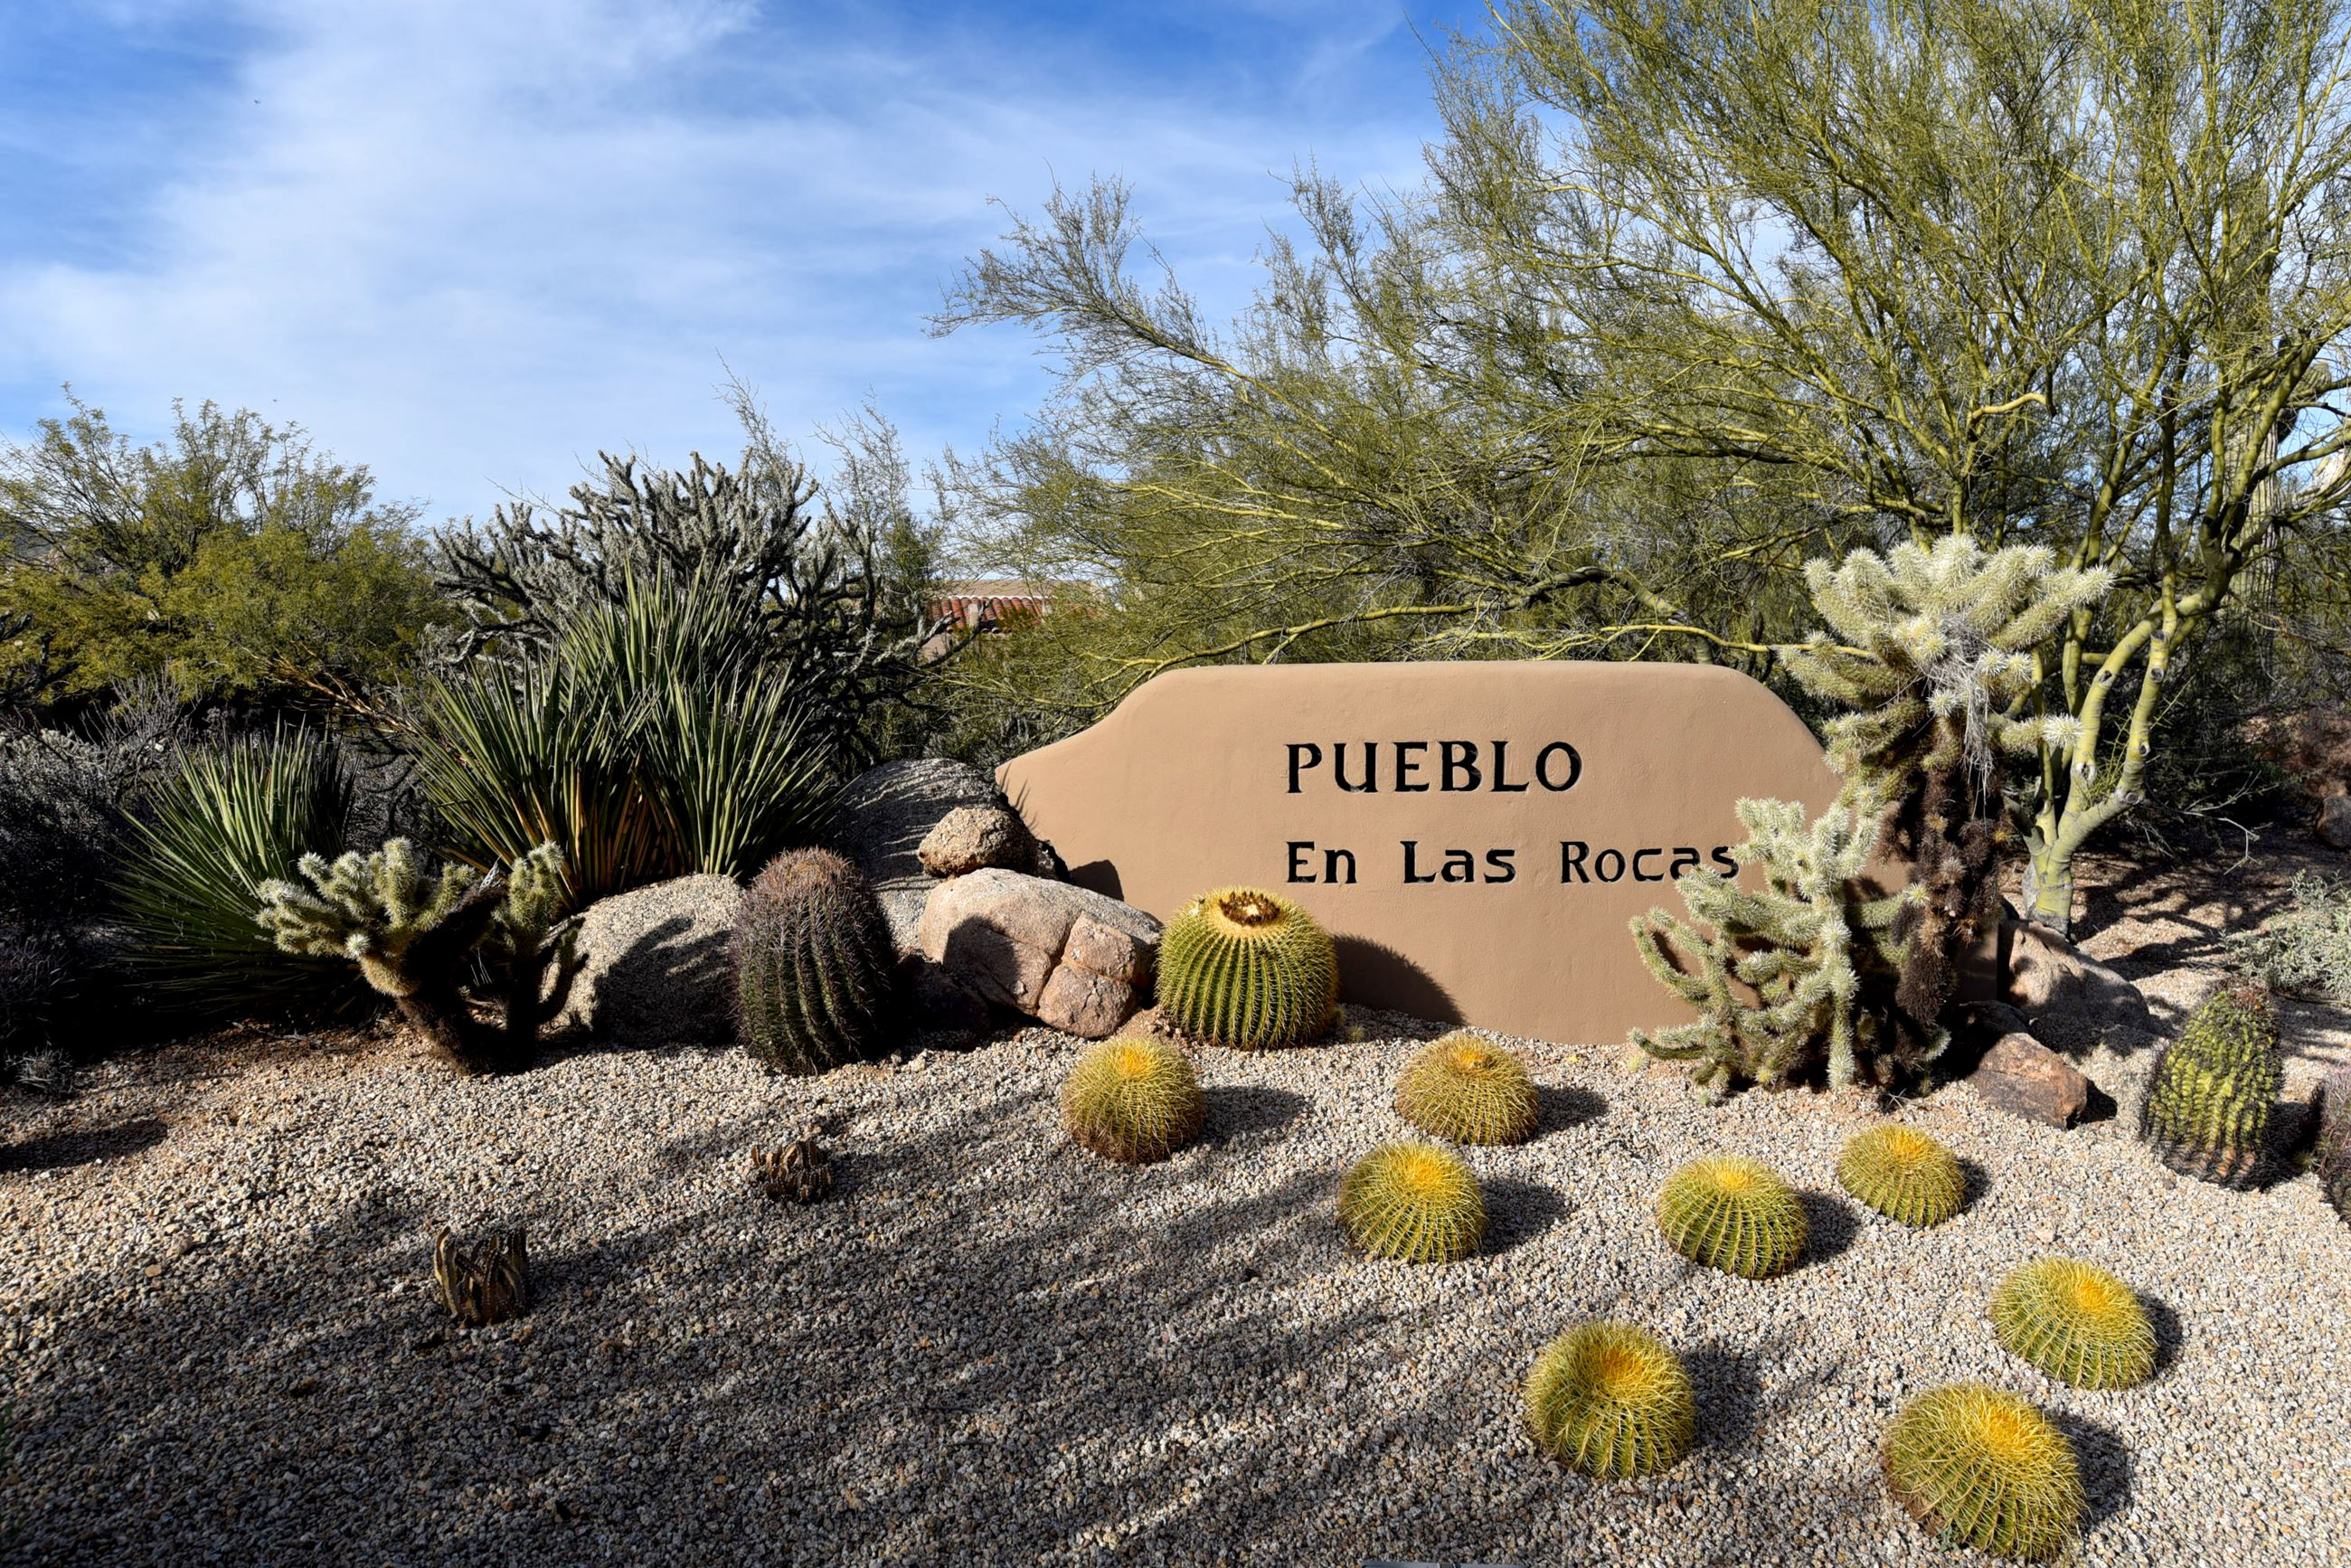 Signage for Pueblos community with cacti and trees